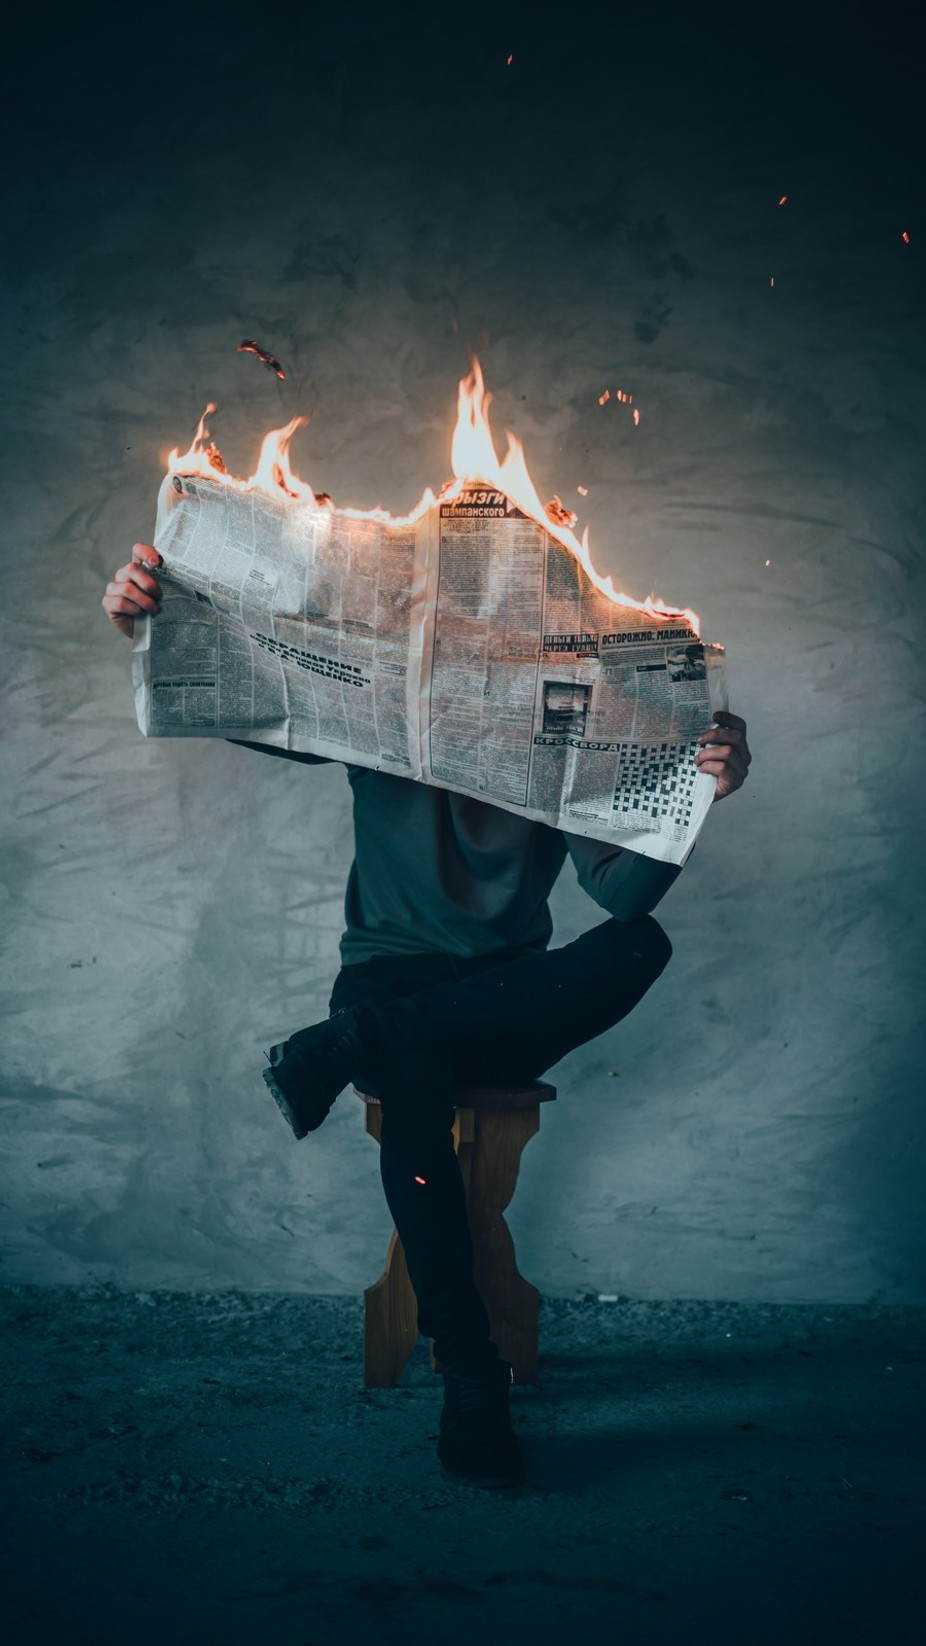 Fire News by Elijah_sad - Creative Reality Photo Contest